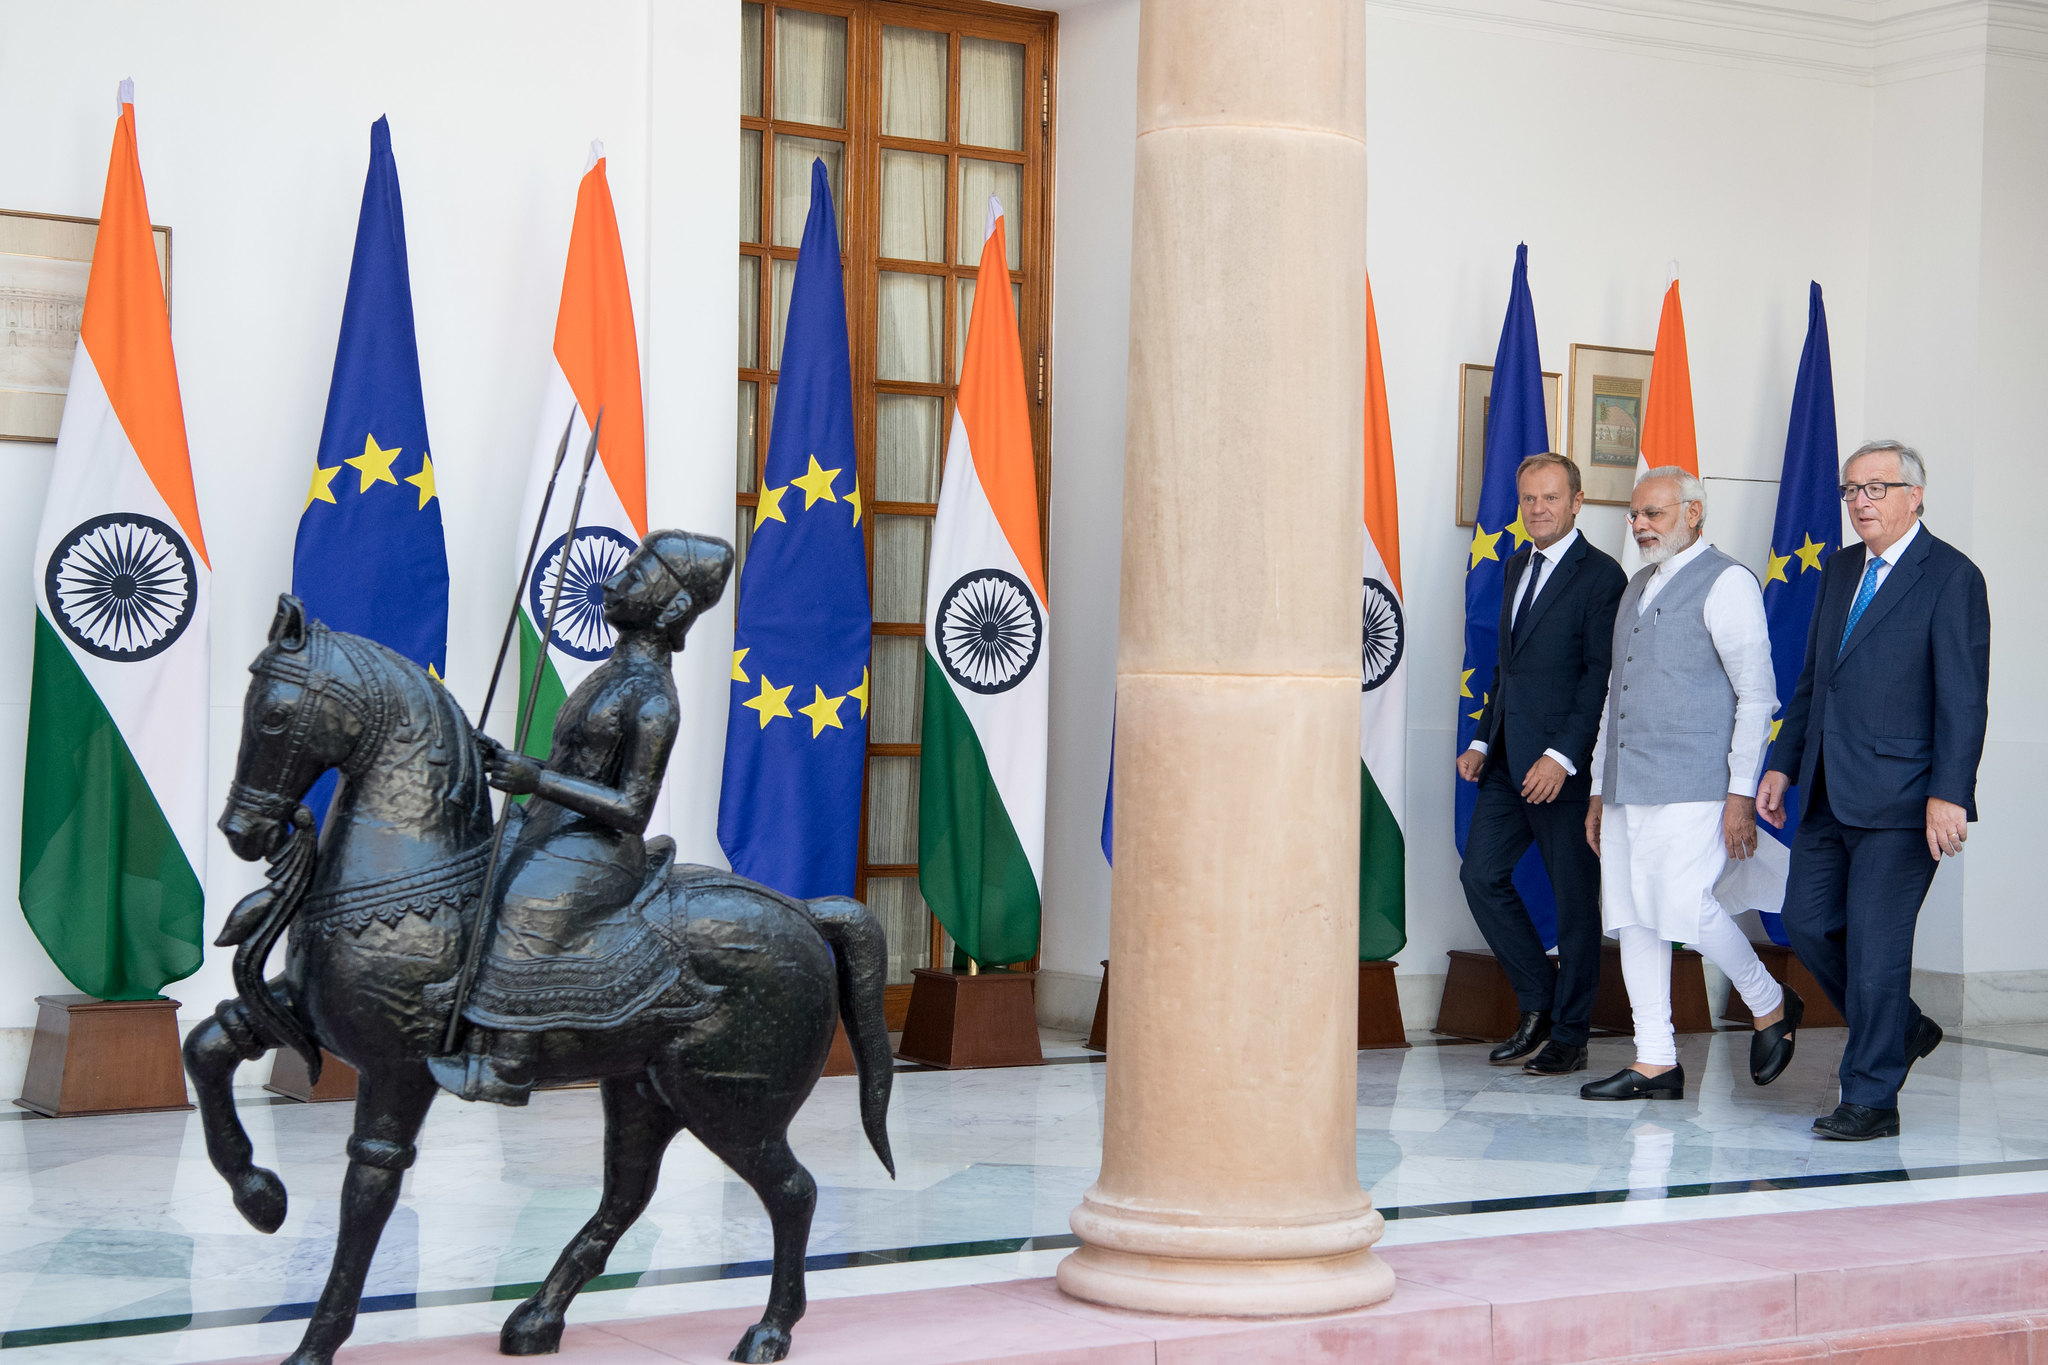 As Modi turns to Europe, India's FDI disappointments are all homemade